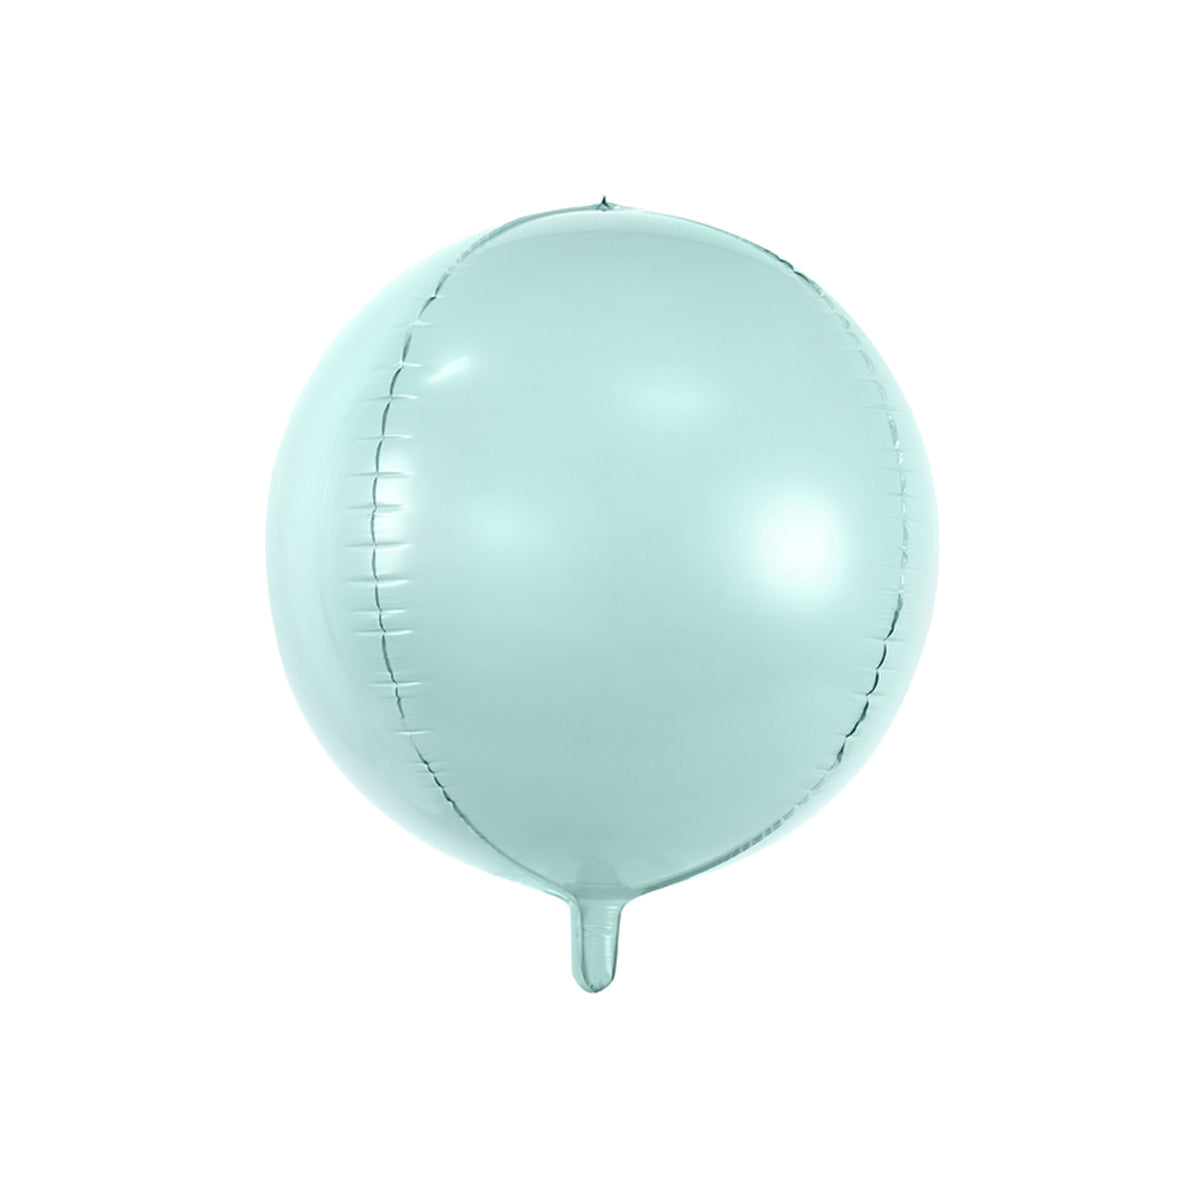 Mint Green Orbz Foil Balloon 16in | The Party Darling